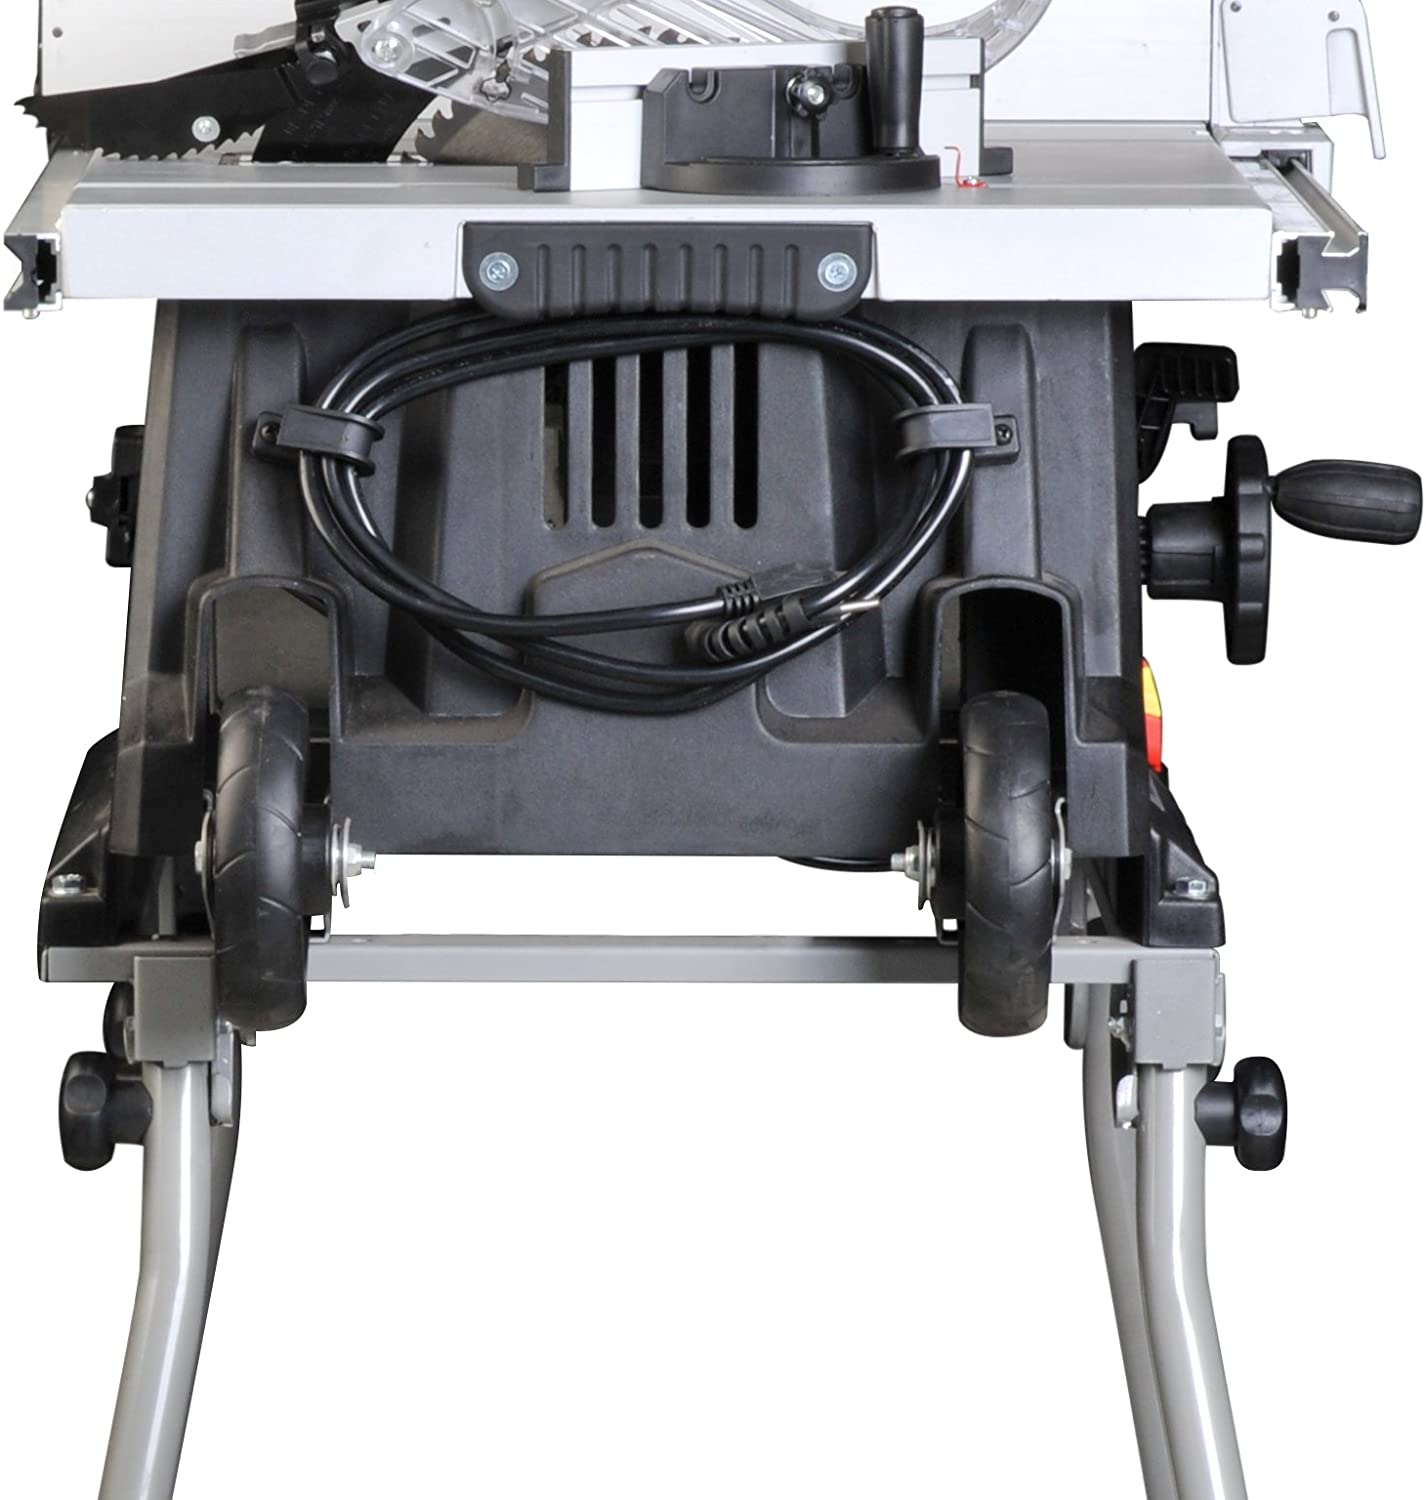 Dobetter DBTS10 Table Saws product image 5